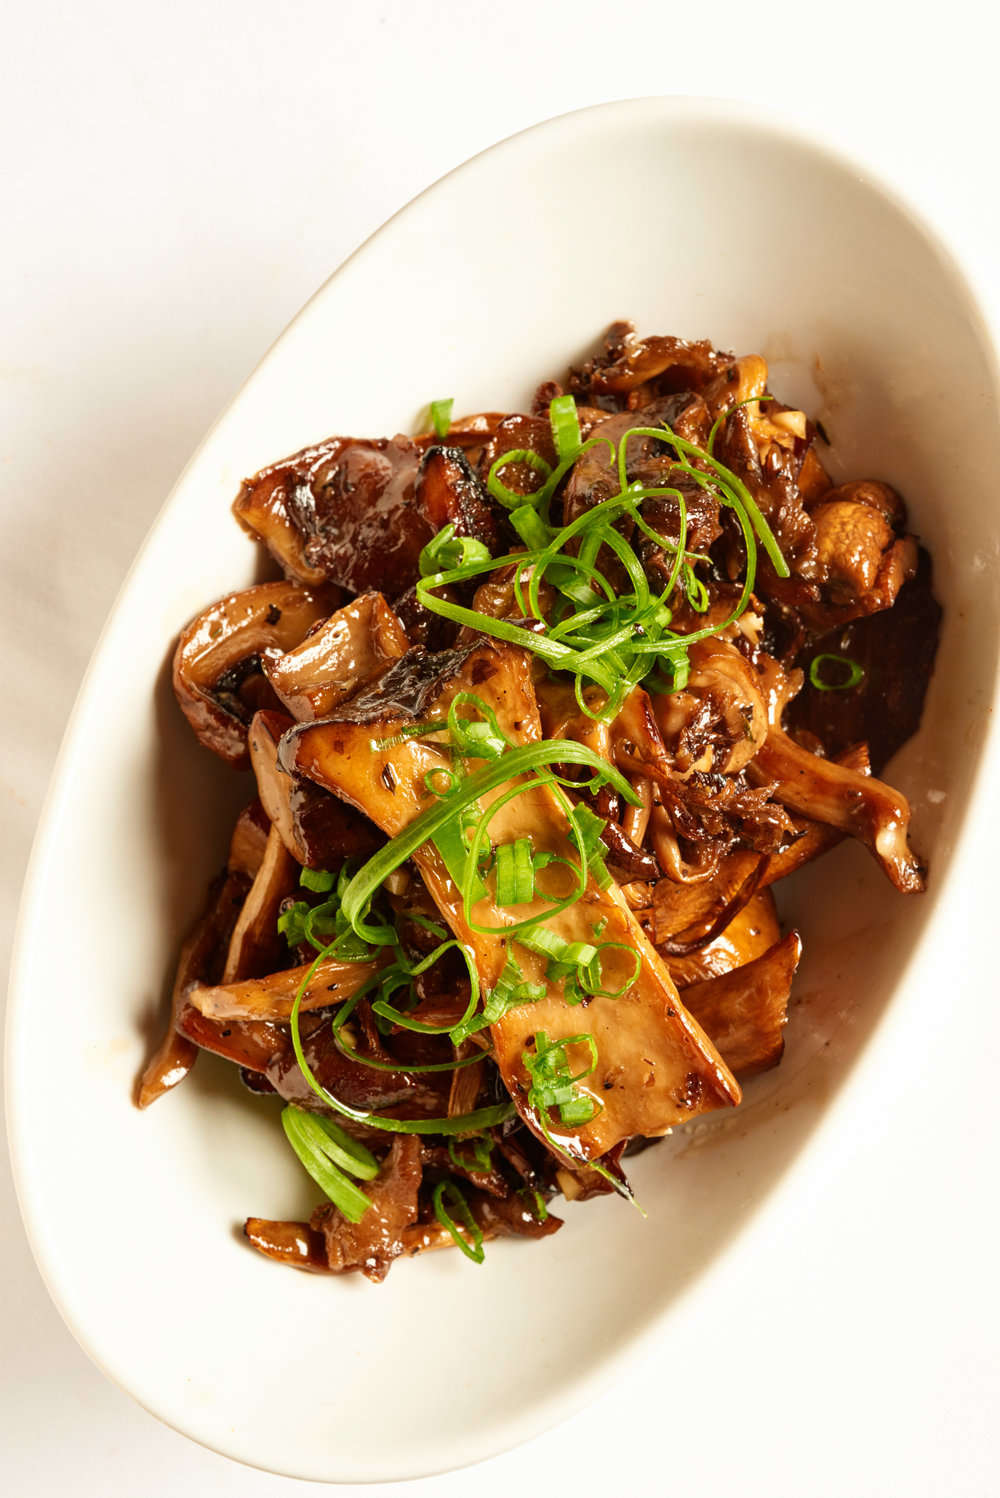 2016_Sep12_DP_RoastedMushrooms_1587.jpg